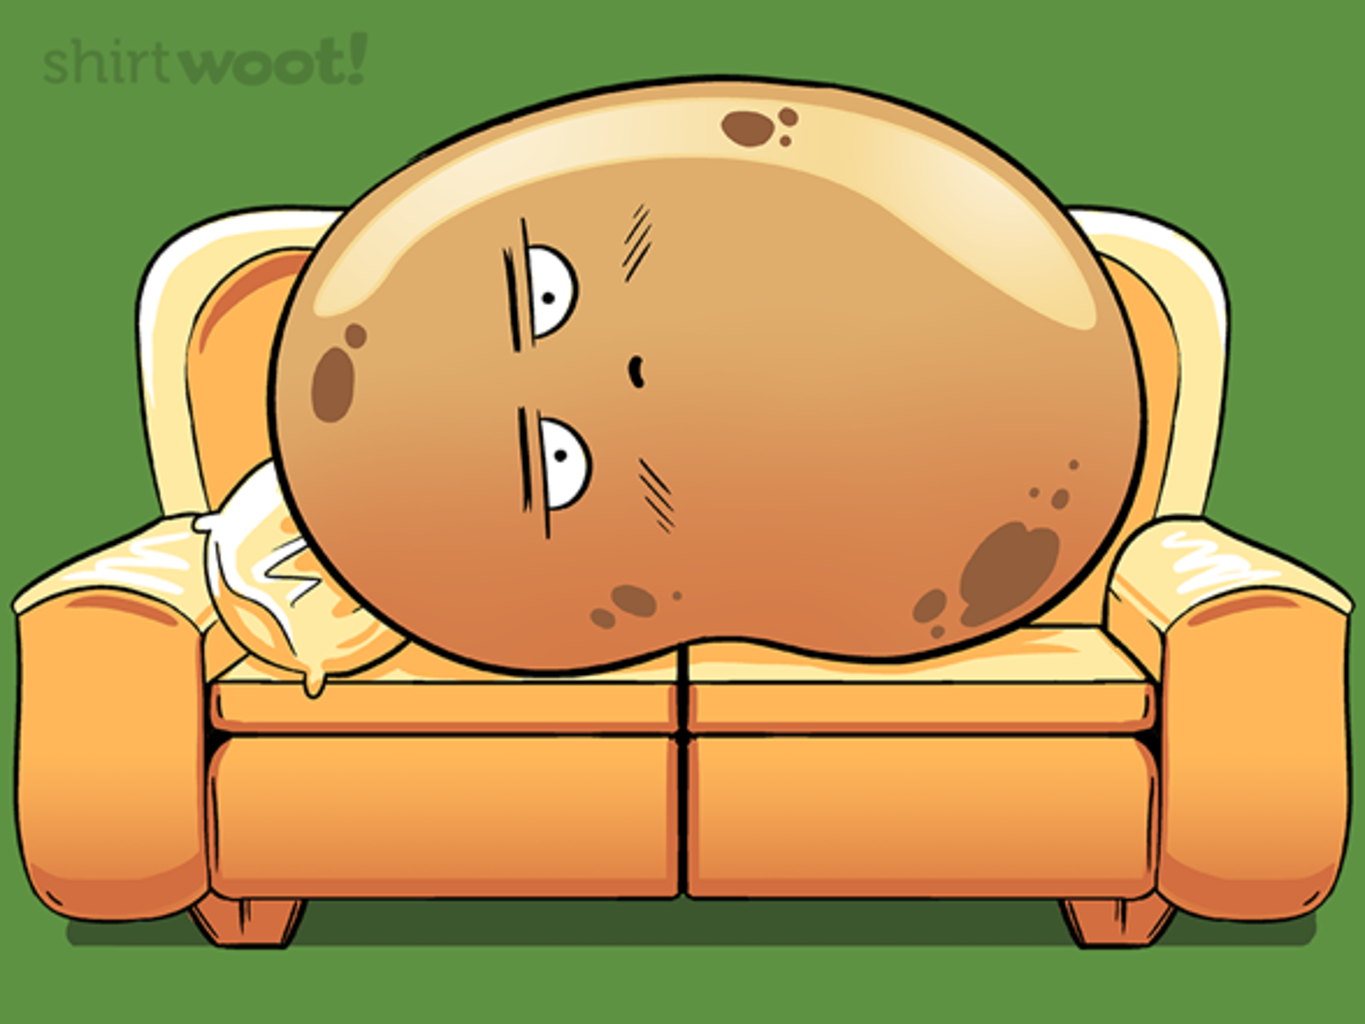 Woot!: Couch Potato - $15.00 + Free shipping